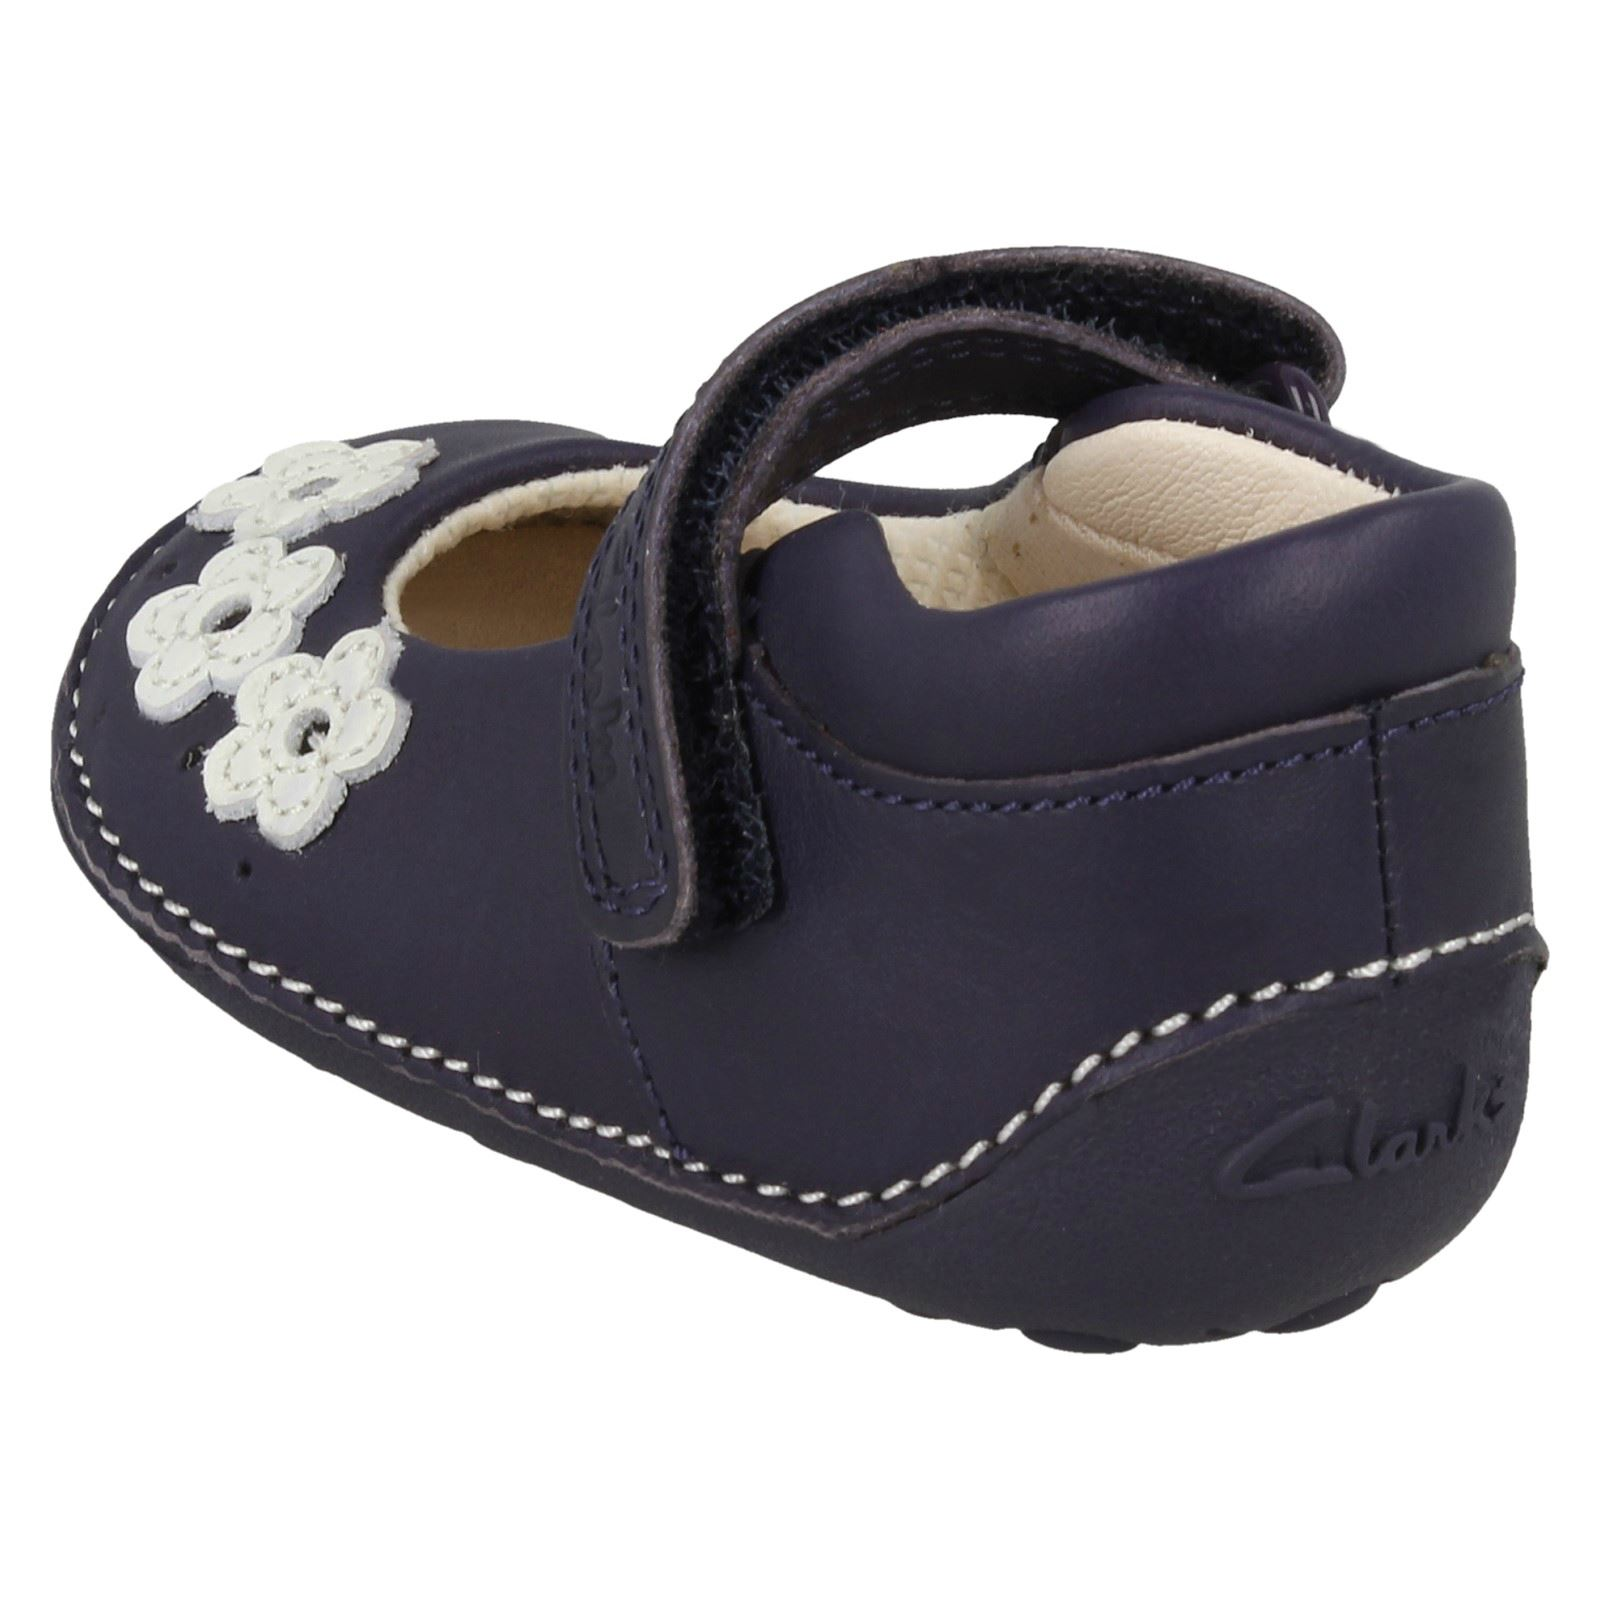 Las First 'little Clarks Darcy' Navy Shoes azul niñas 4rx4wfqU